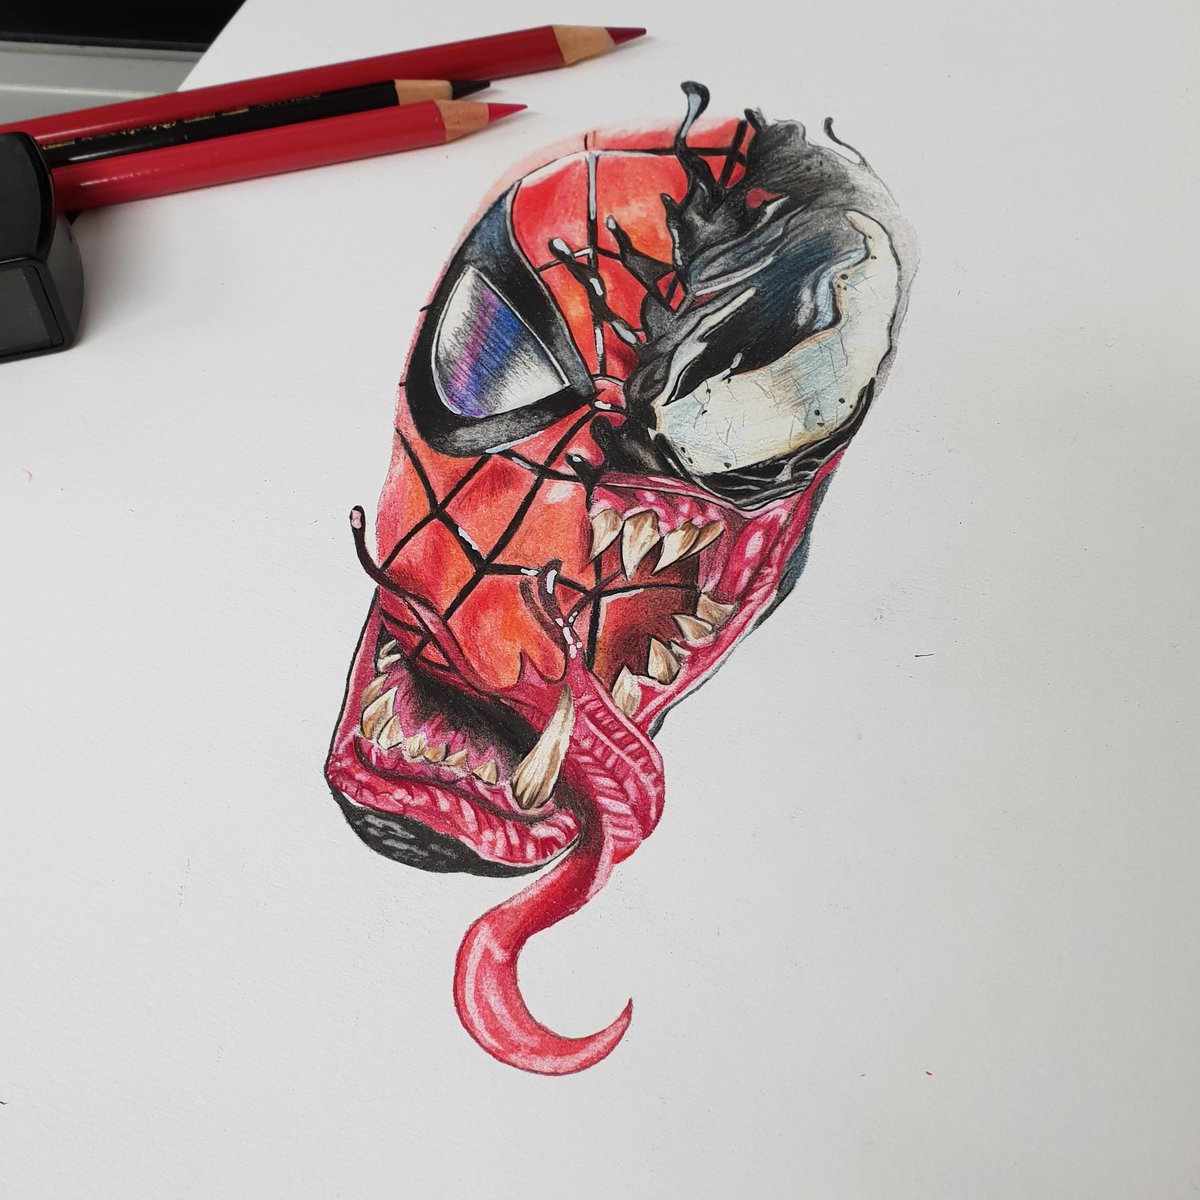 Was so happy with how this turned out #marvelcomics #marvel #spiderman  #Venom #spidermanvsvenom #fabercastell #colour #drawings #FolloMe <br>http://pic.twitter.com/Ki65liJXjM